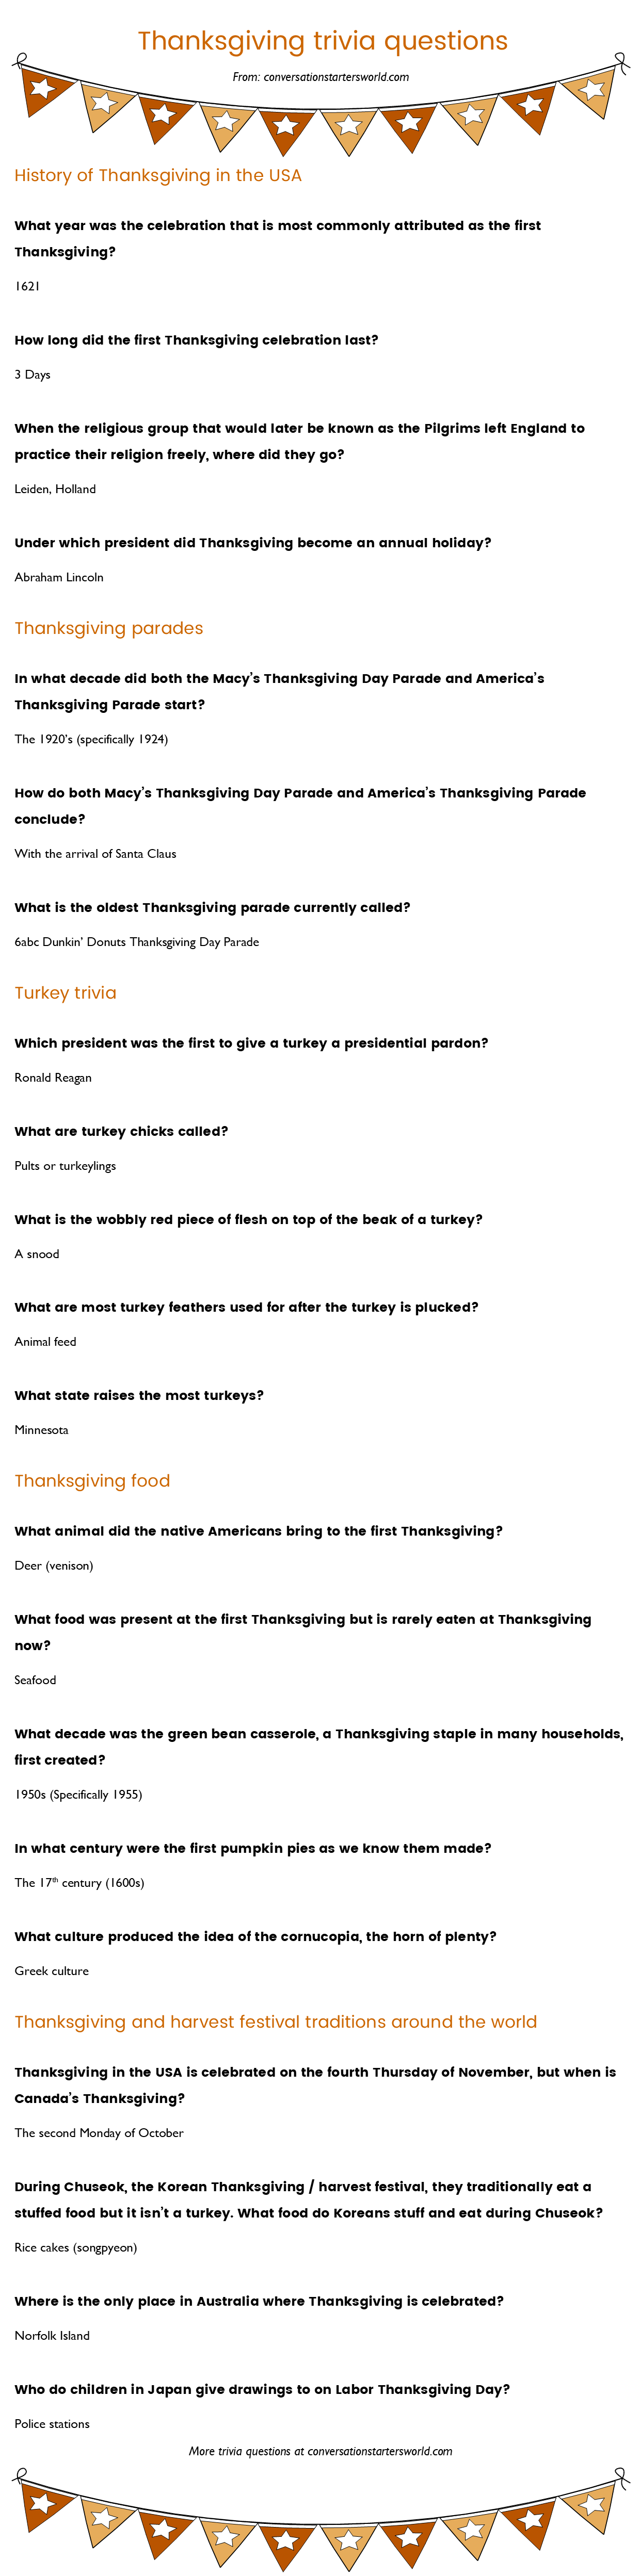 21 Thanksgiving trivia questions most people don't know the answer to